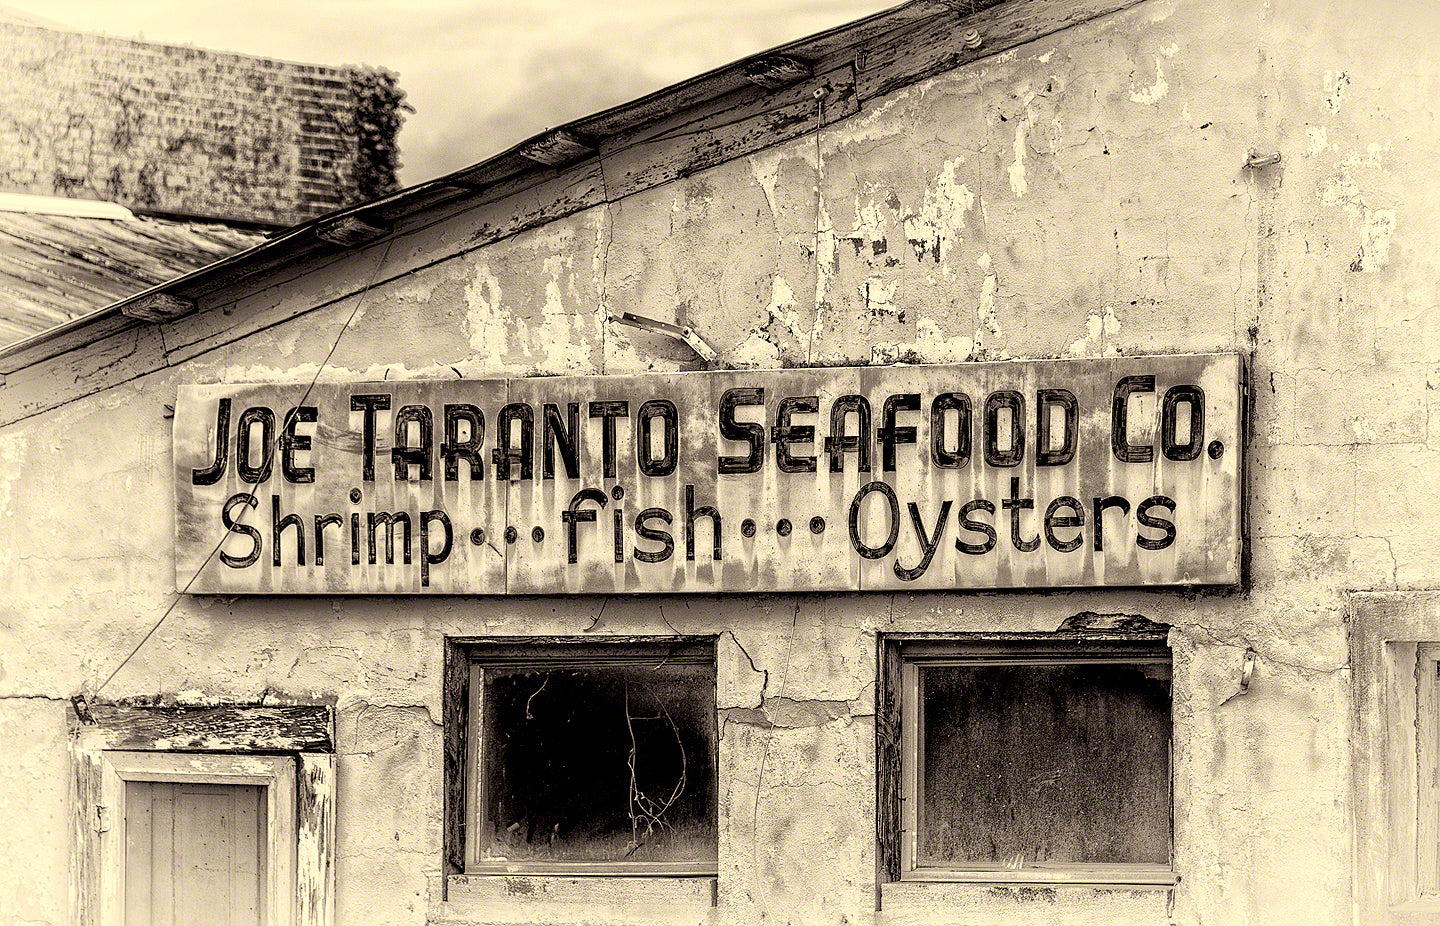 A Landscape Fine Art Photograph by Mike Ring of an old rustic seafood house.